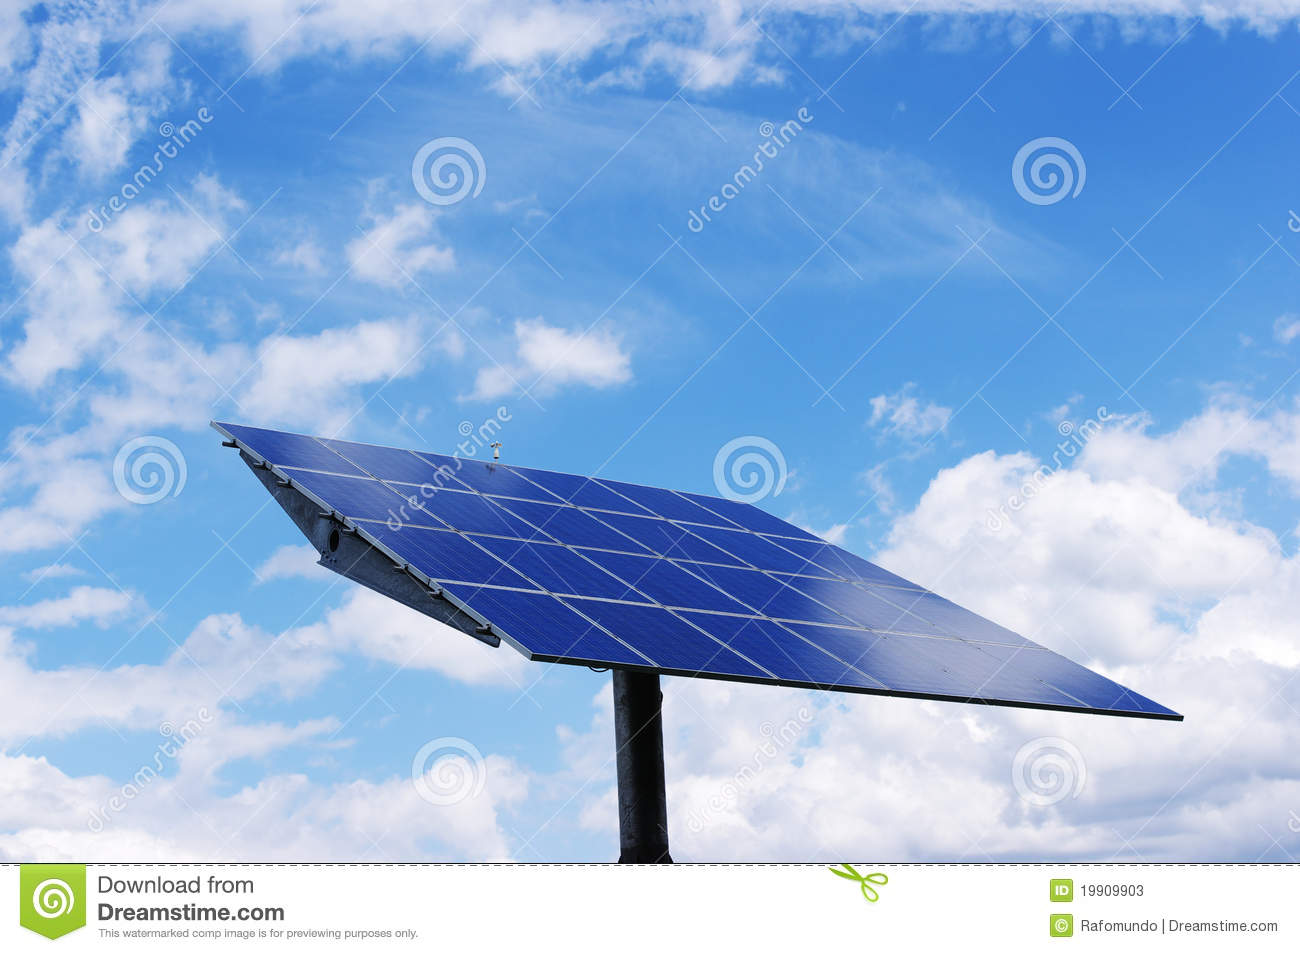 More similar stock images of ` Solar energy plant `